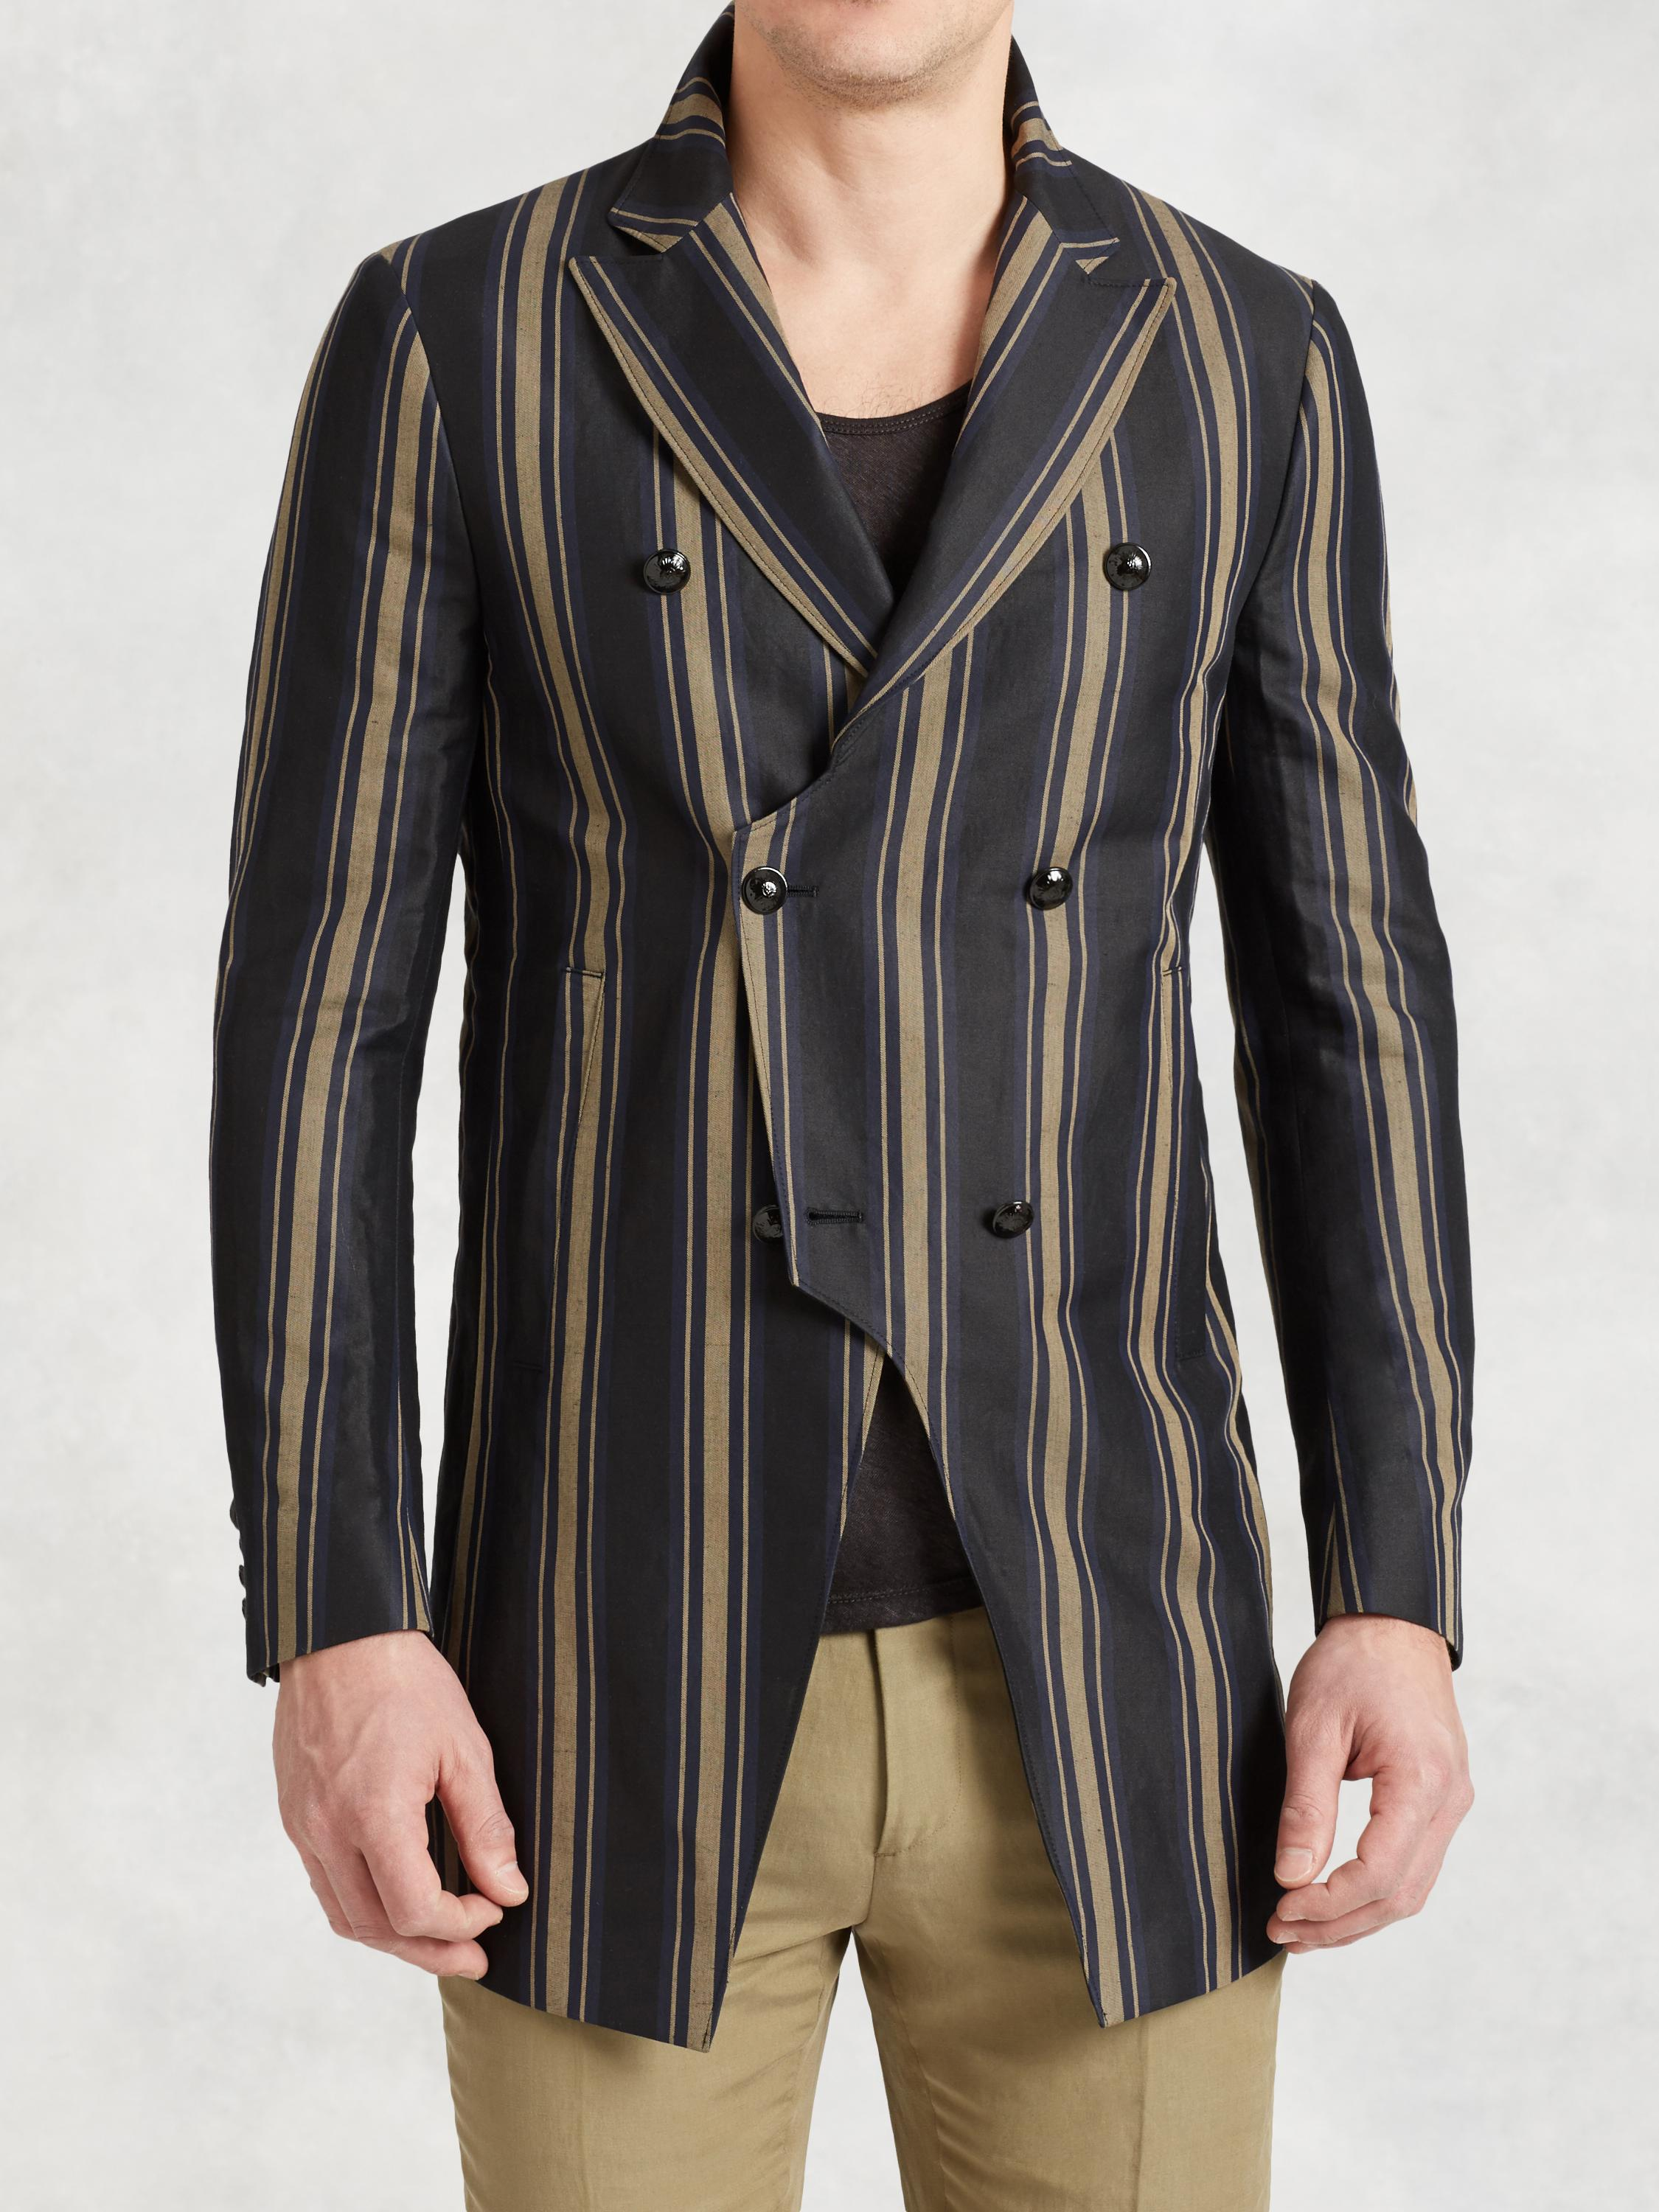 Double Breasted 3/4 Length Coat In Bold Stripes